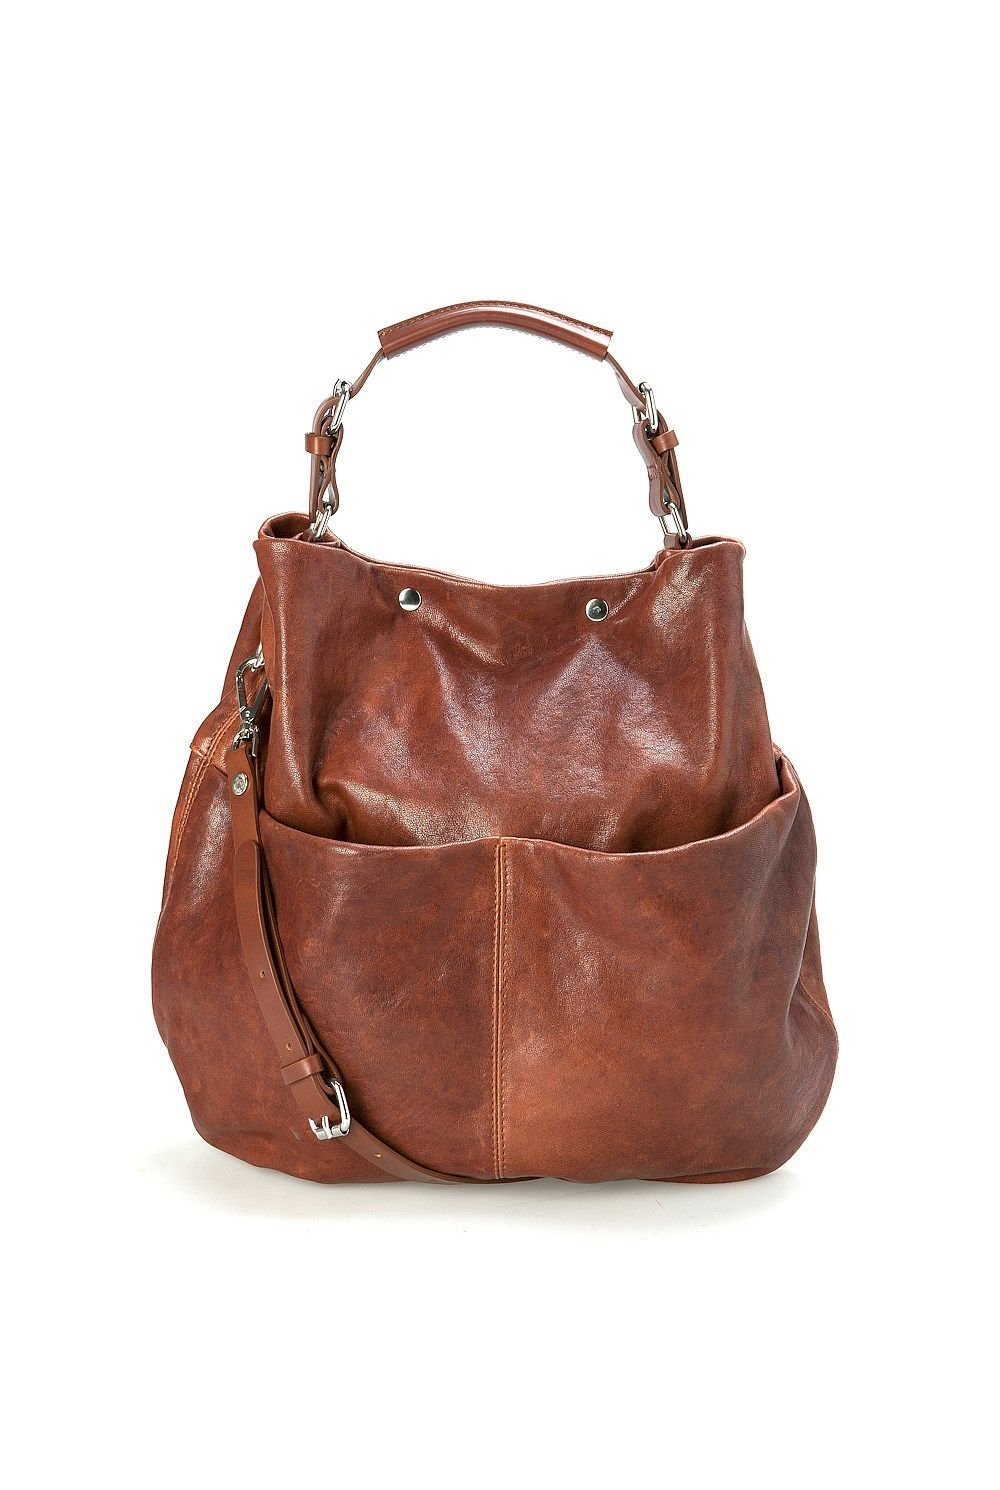 Country Road Handbags Online Wenona Hobo